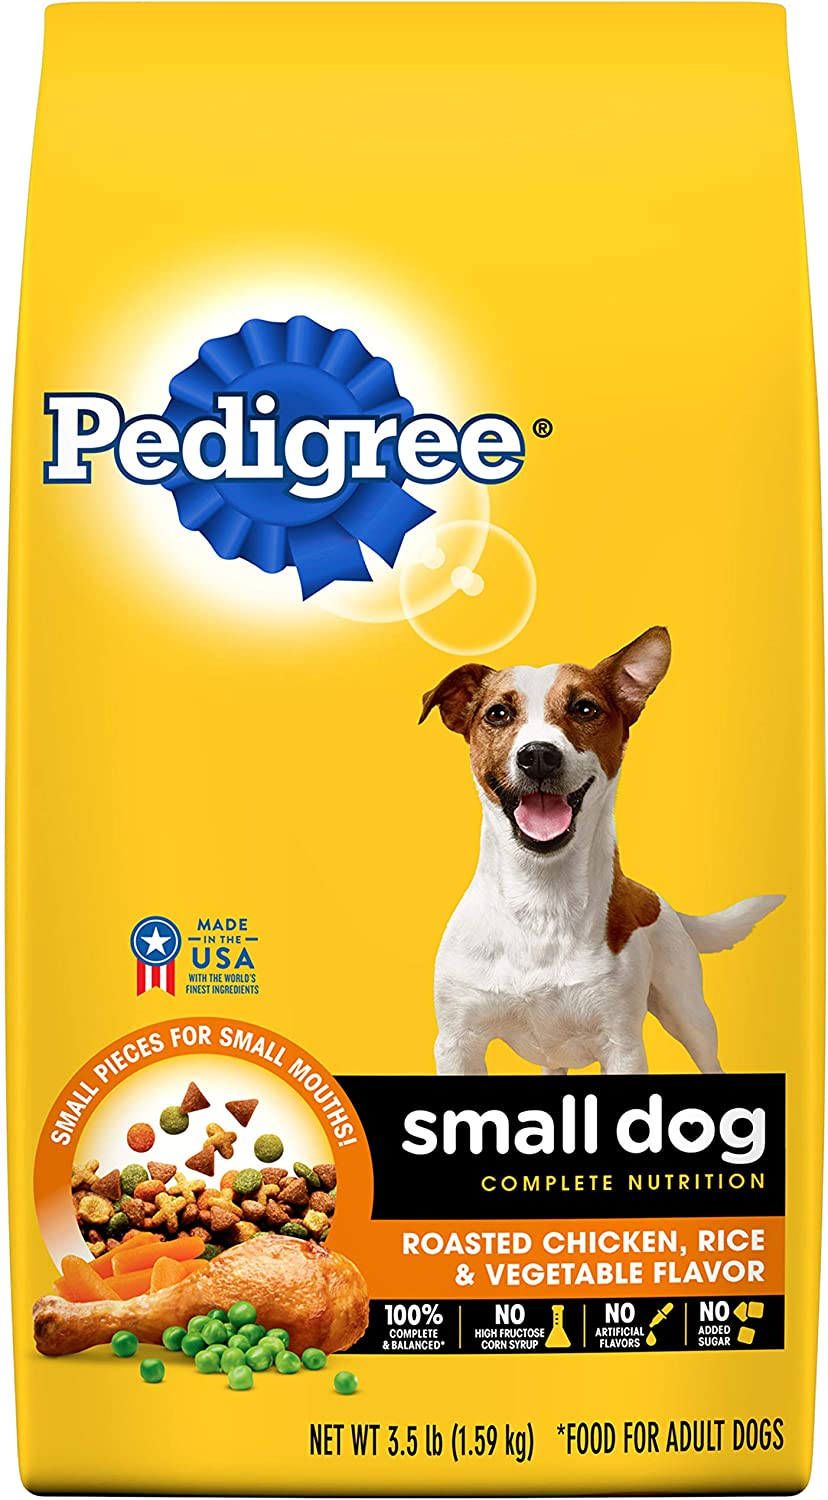 9. Pedigree Small Dog Complete Nutrition